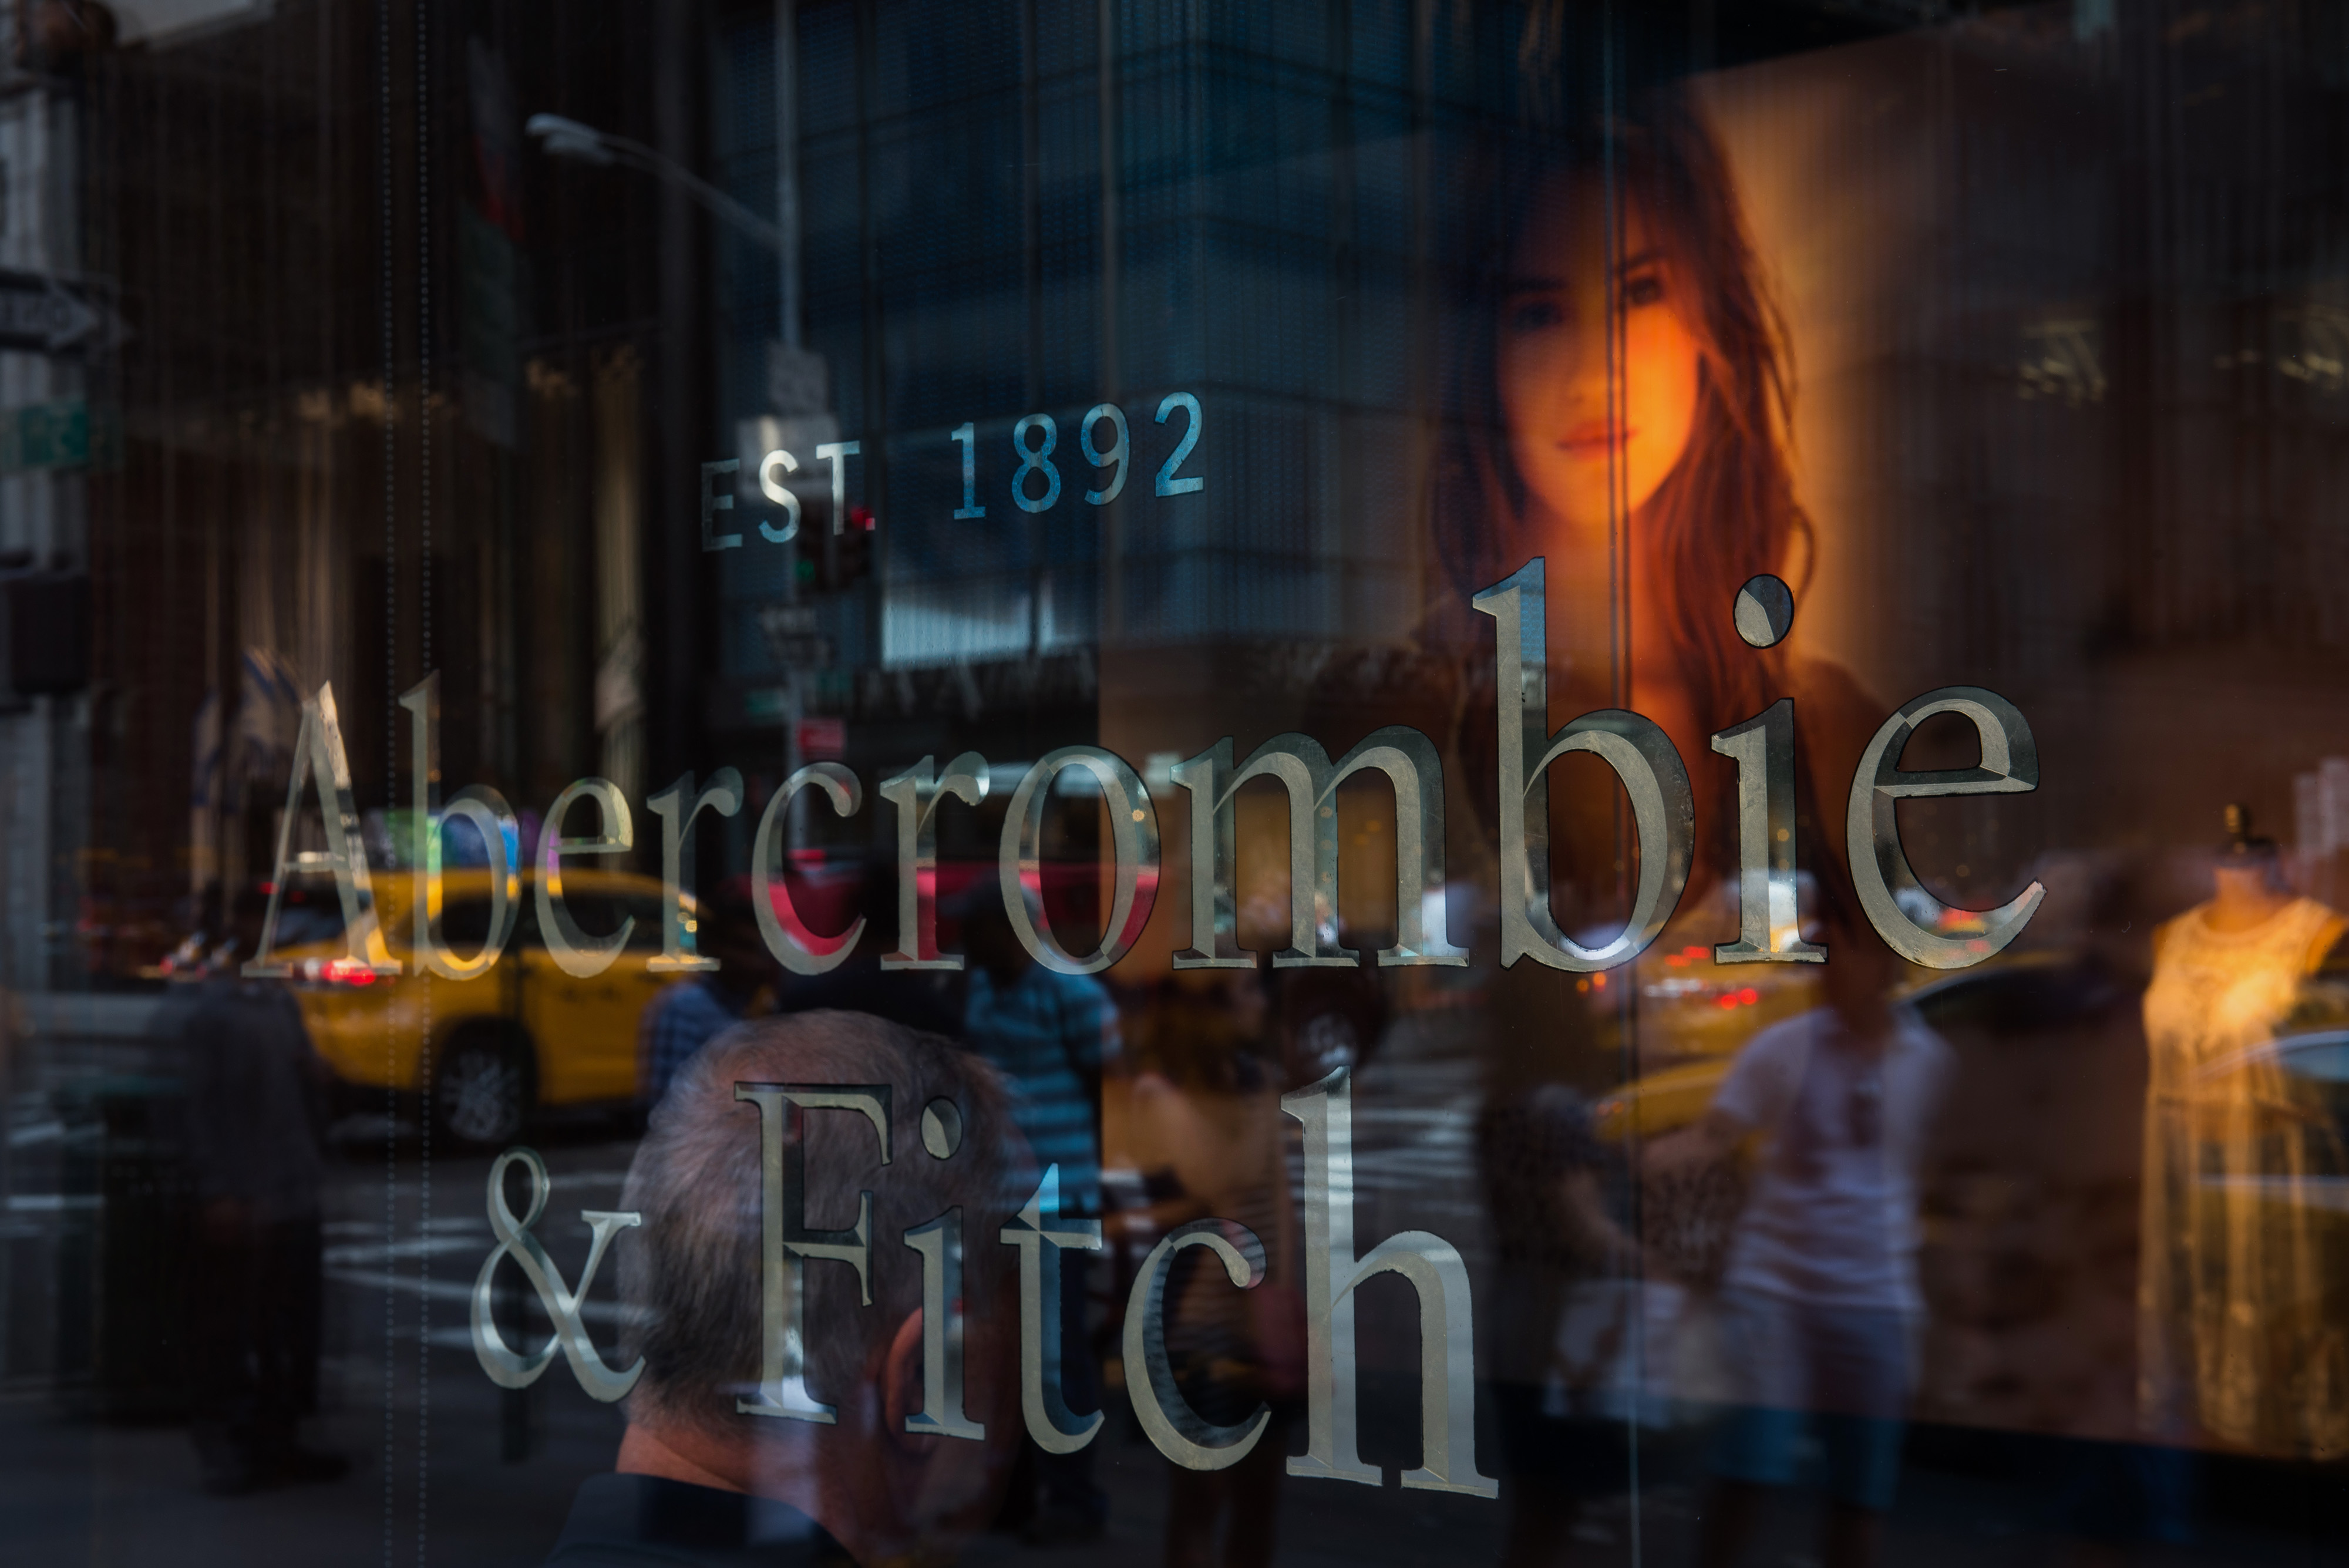 Abercrombie and Fitch's Manhattan flagship store on 5th Avenue in New York, U.S., on Tuesday, May 26, 2015.  Photographer: Craig Warga/Bloomberg *** Local Caption ***